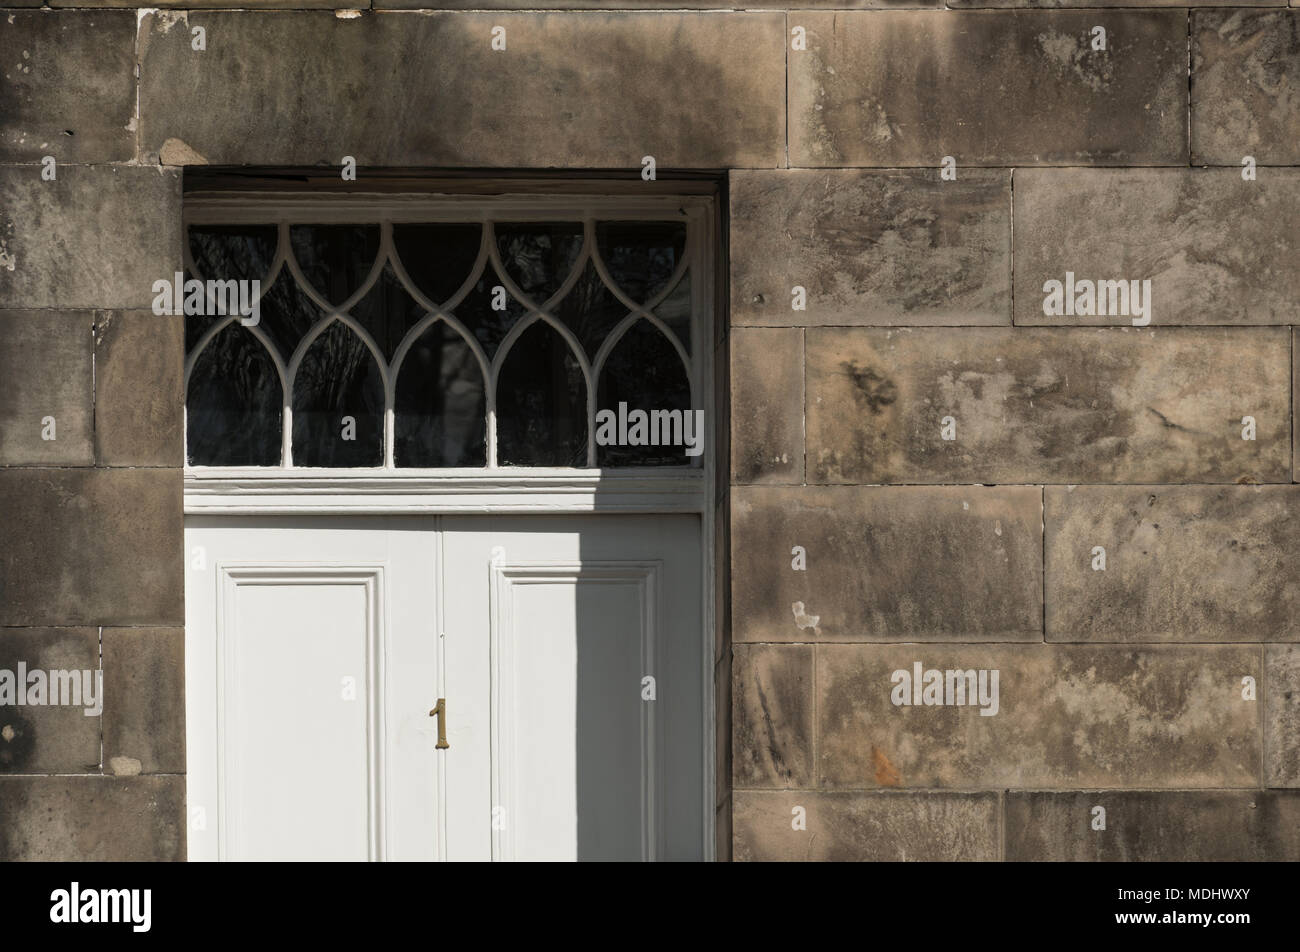 Architectural detail of regency period townhouses in Marshall Place, Perth, Scotland, UK. - Stock Image